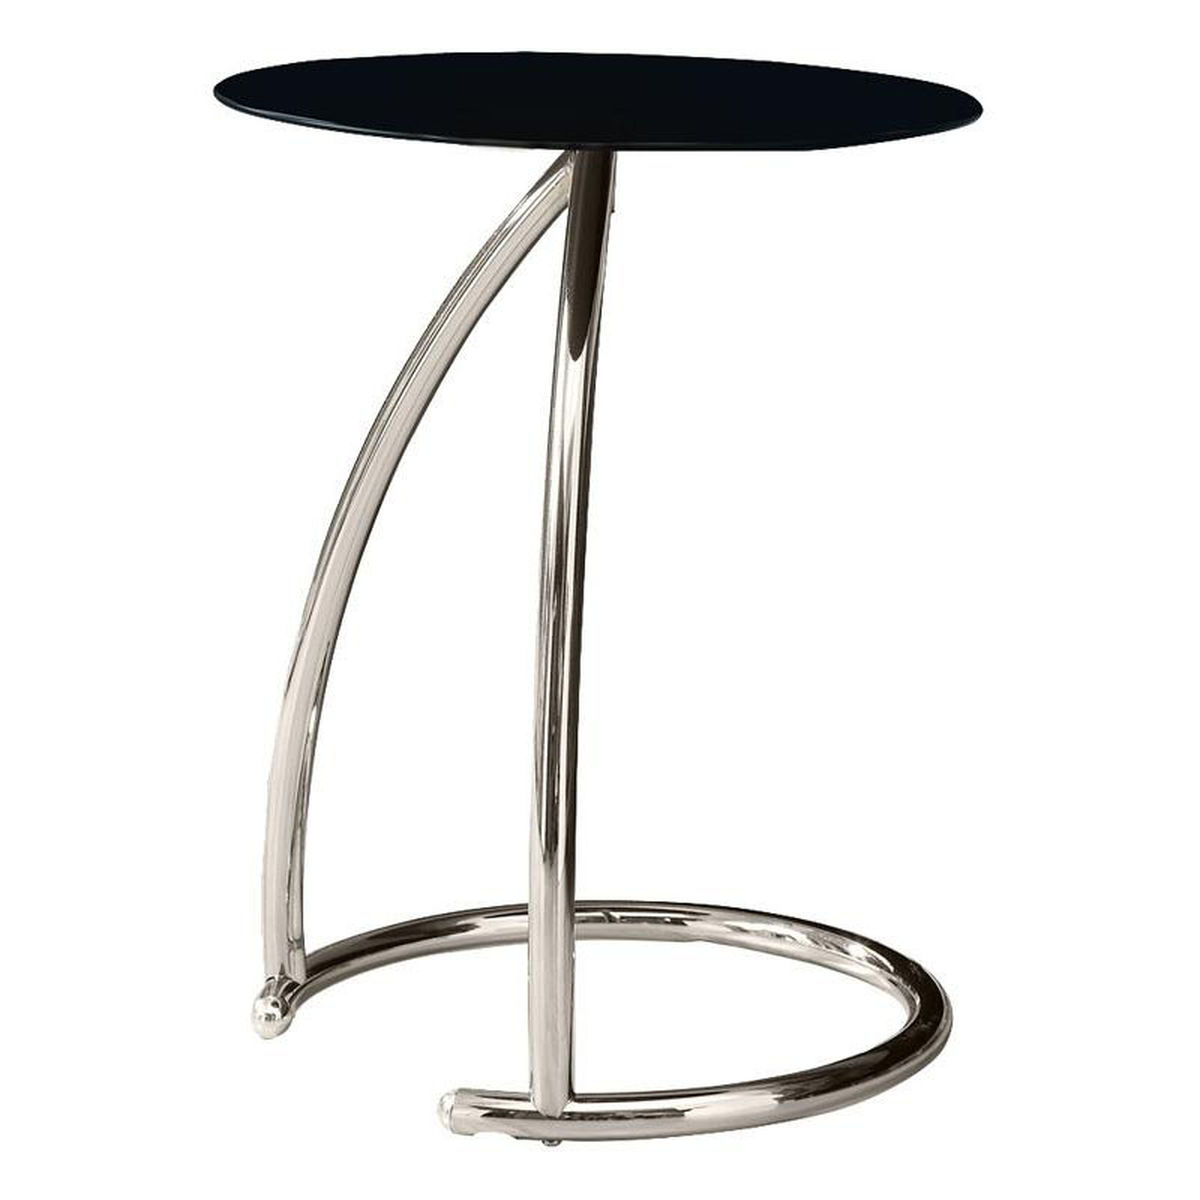 black glass top accent table bizchair monarch specialties msp main our curved chrome with tempered folding coffee marble dining set small wingback chair pedestal plant stand